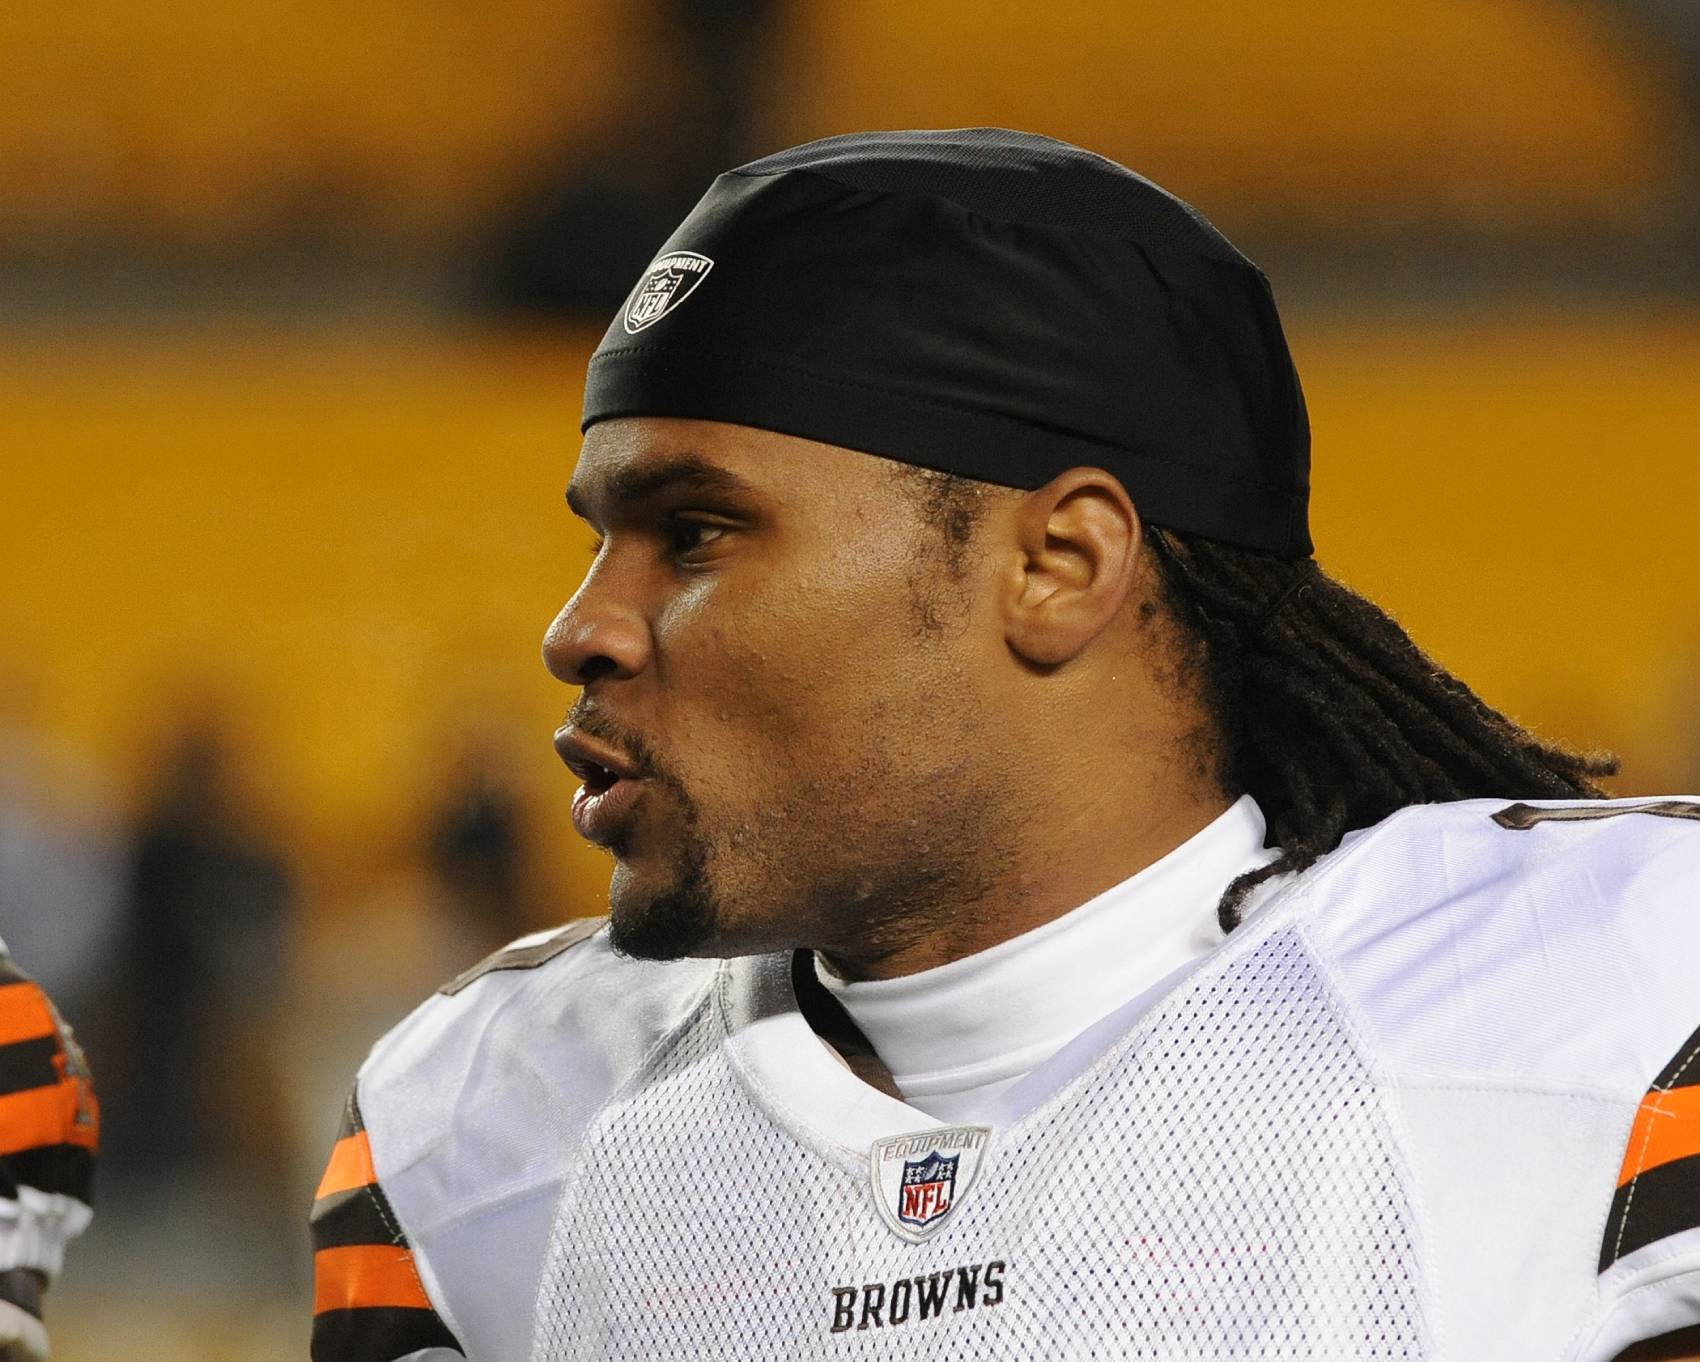 Josh Cribbs was one of the NFL's most electrifying players when he played in Cleveland.